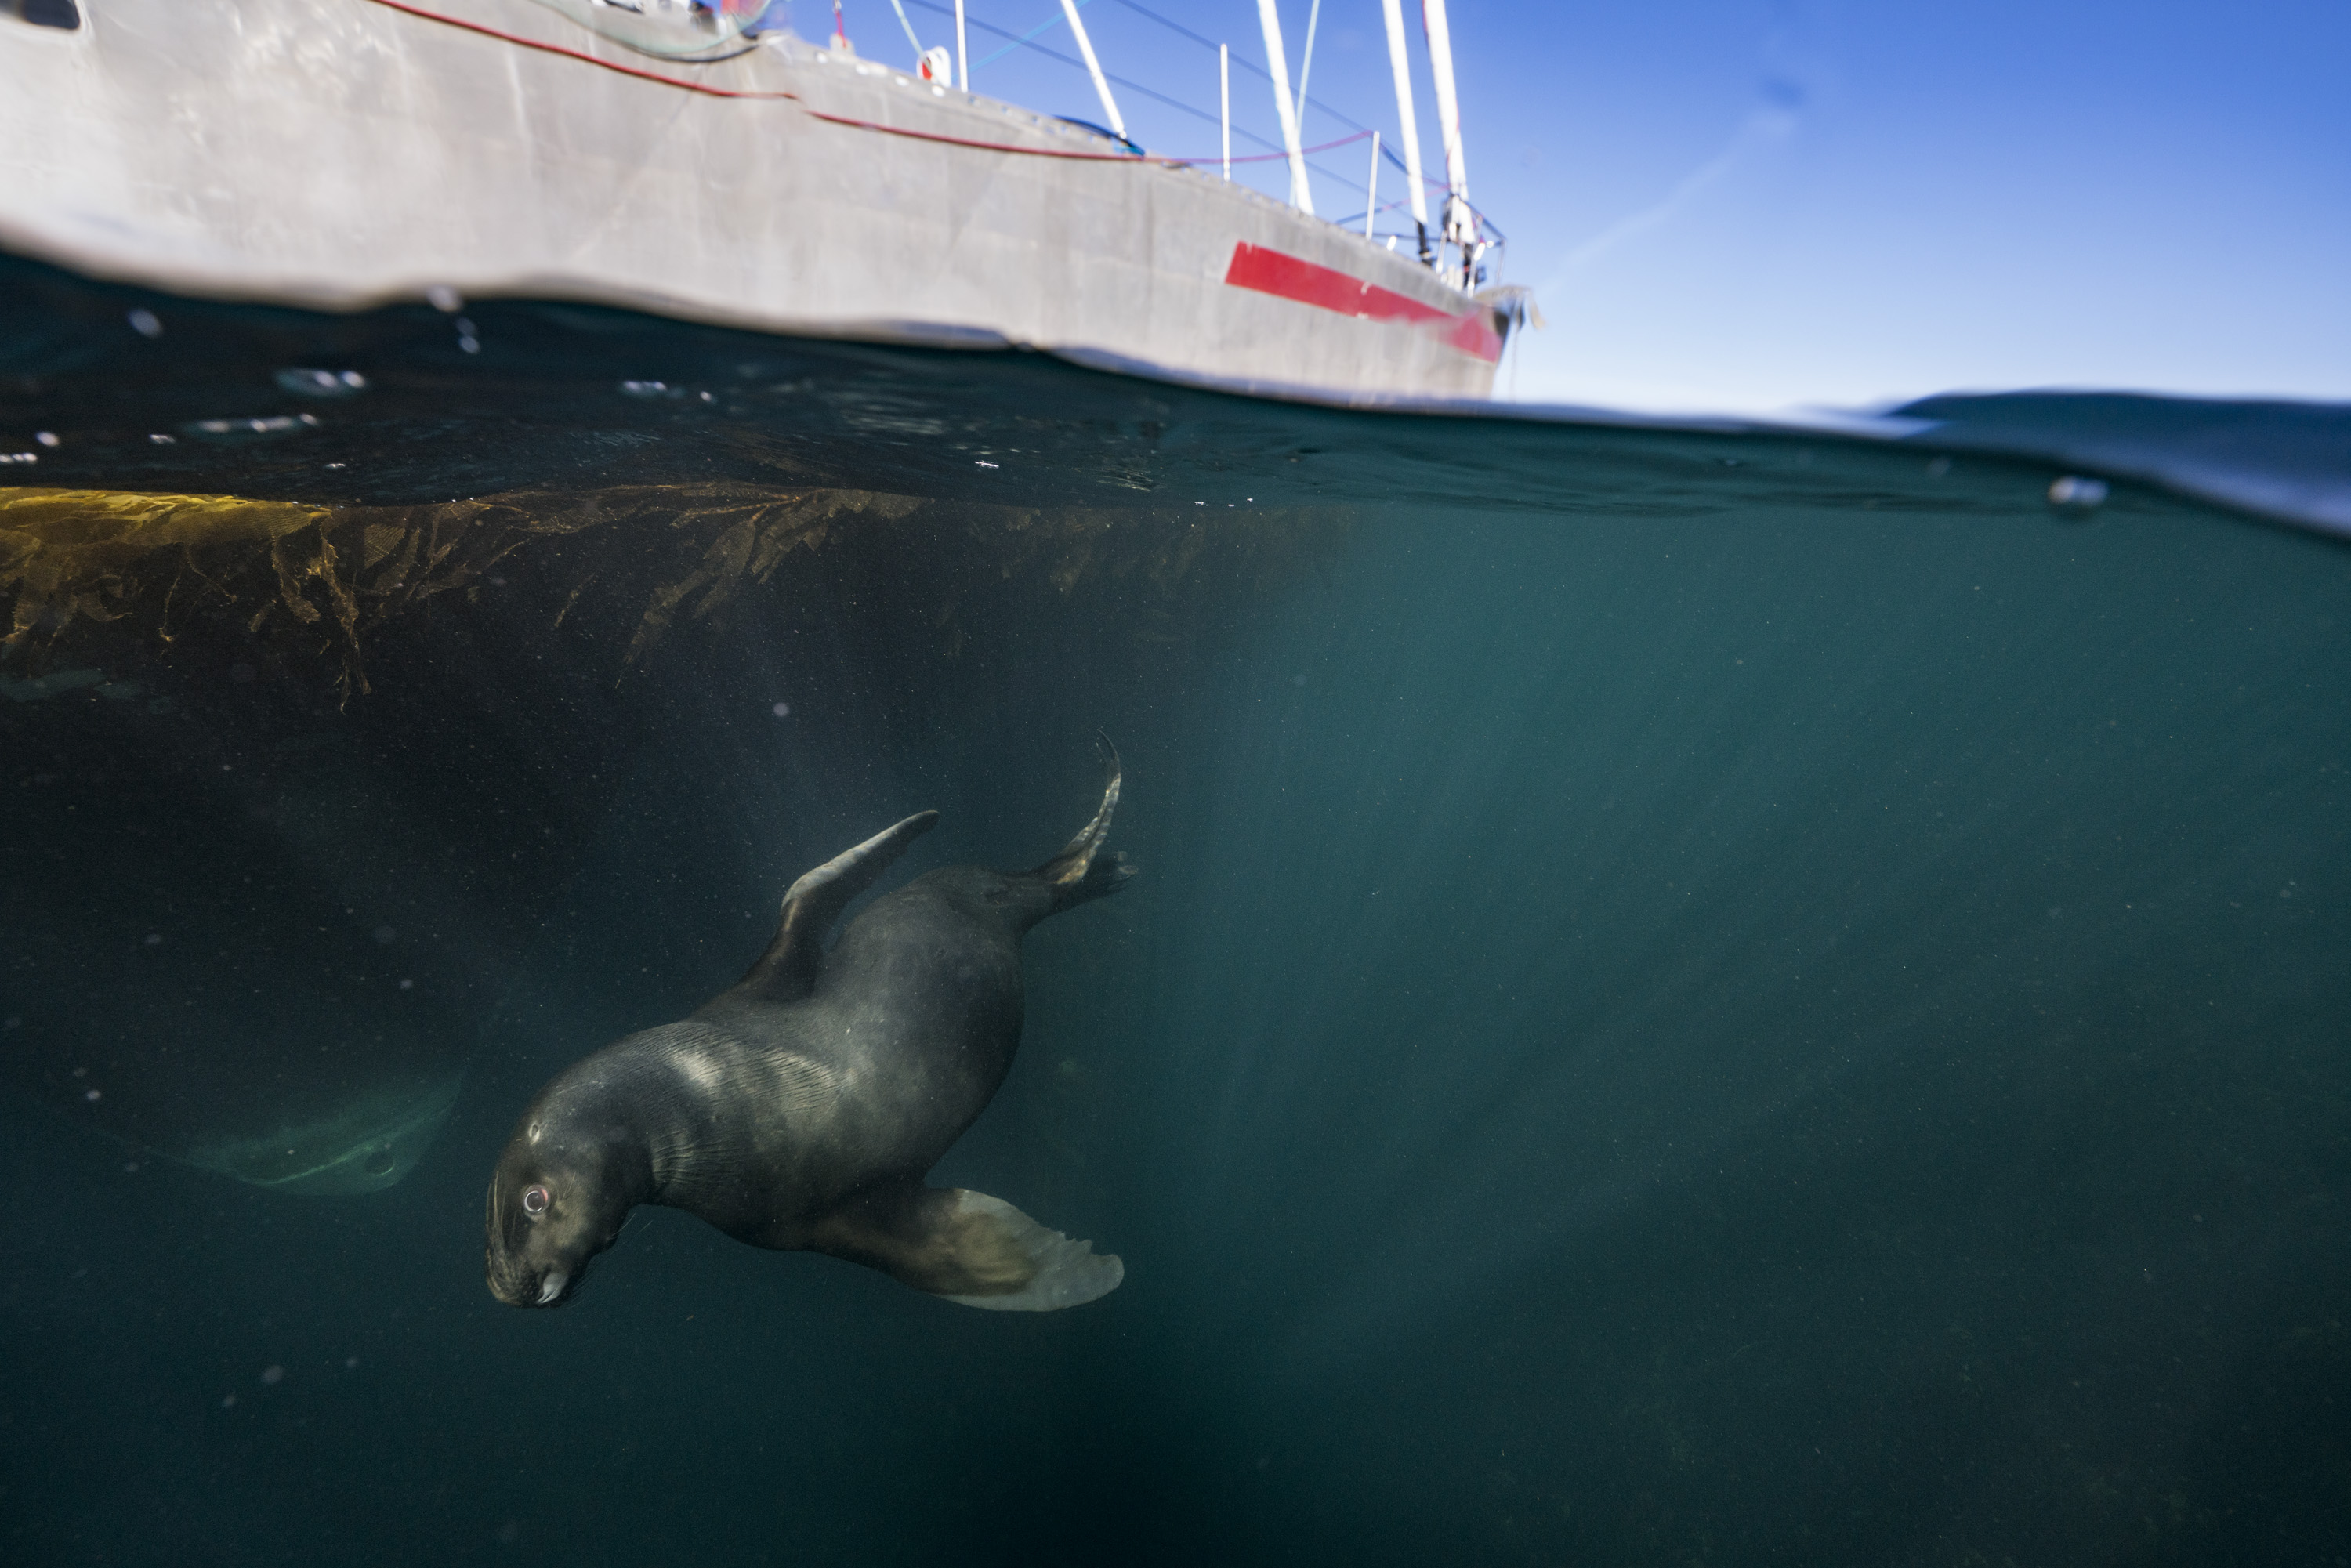 Sea lion and sail boat Justin Hofman